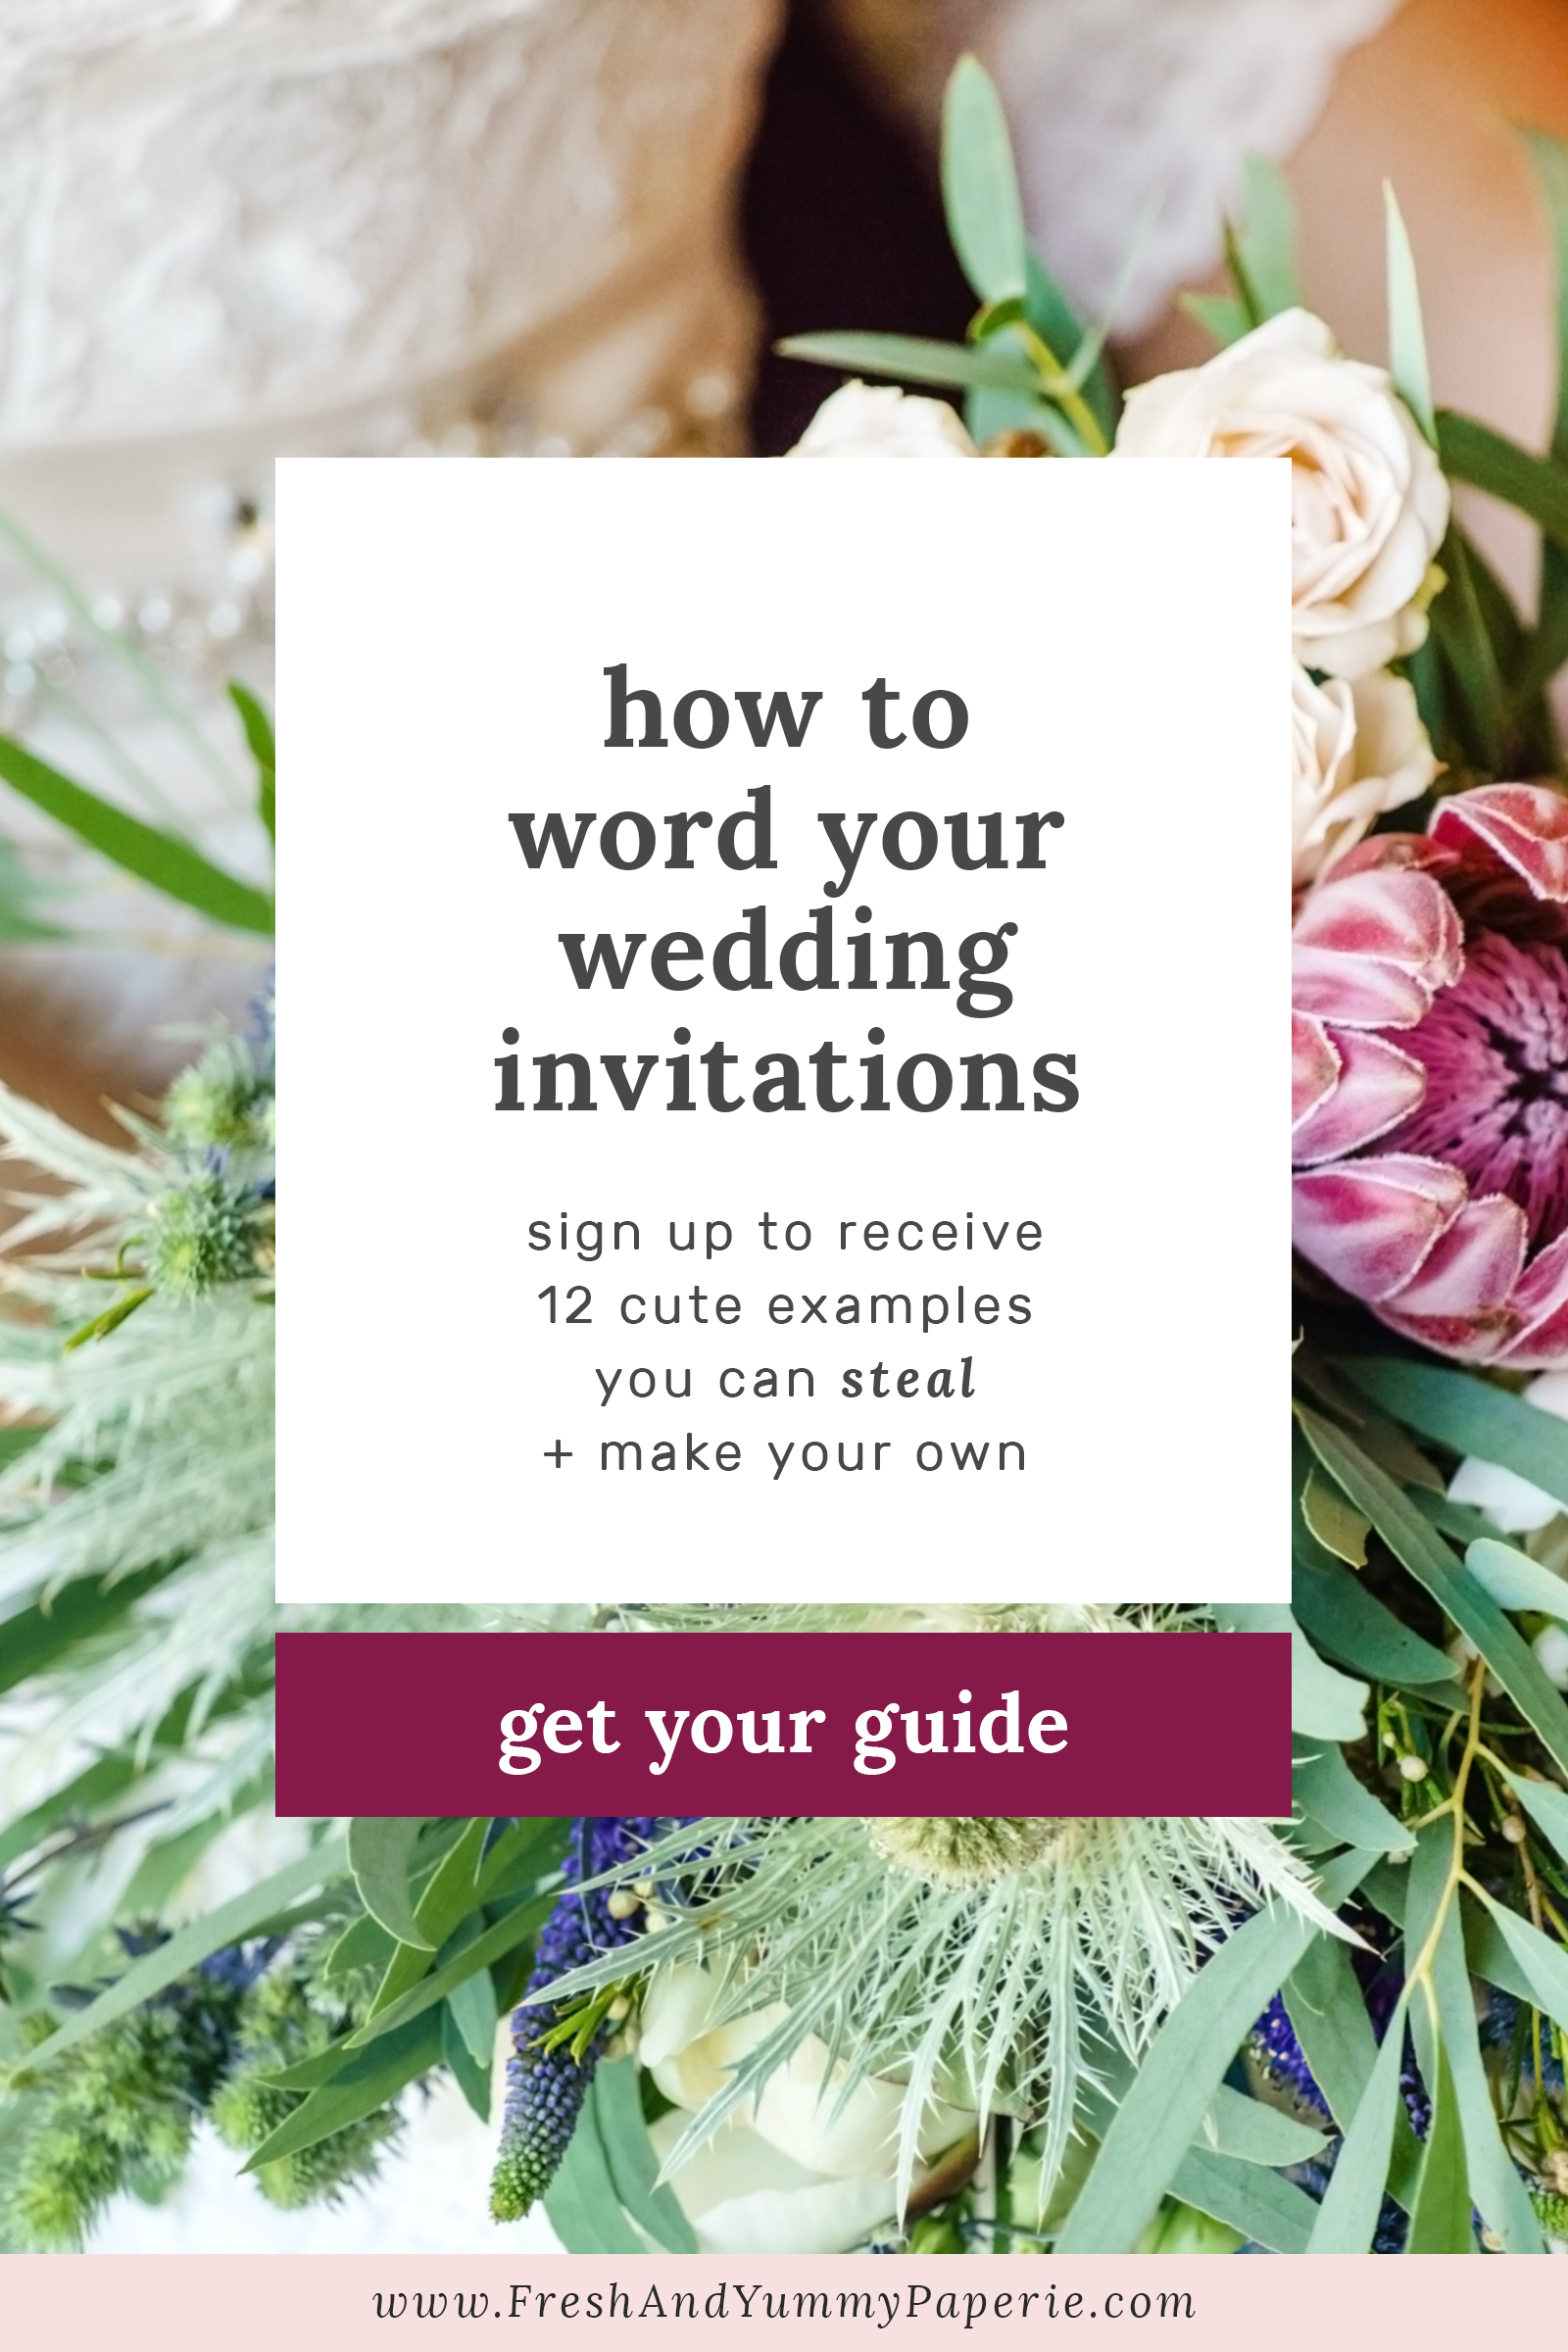 How To Word Your Wedding Invitations By Fresh & Yummy